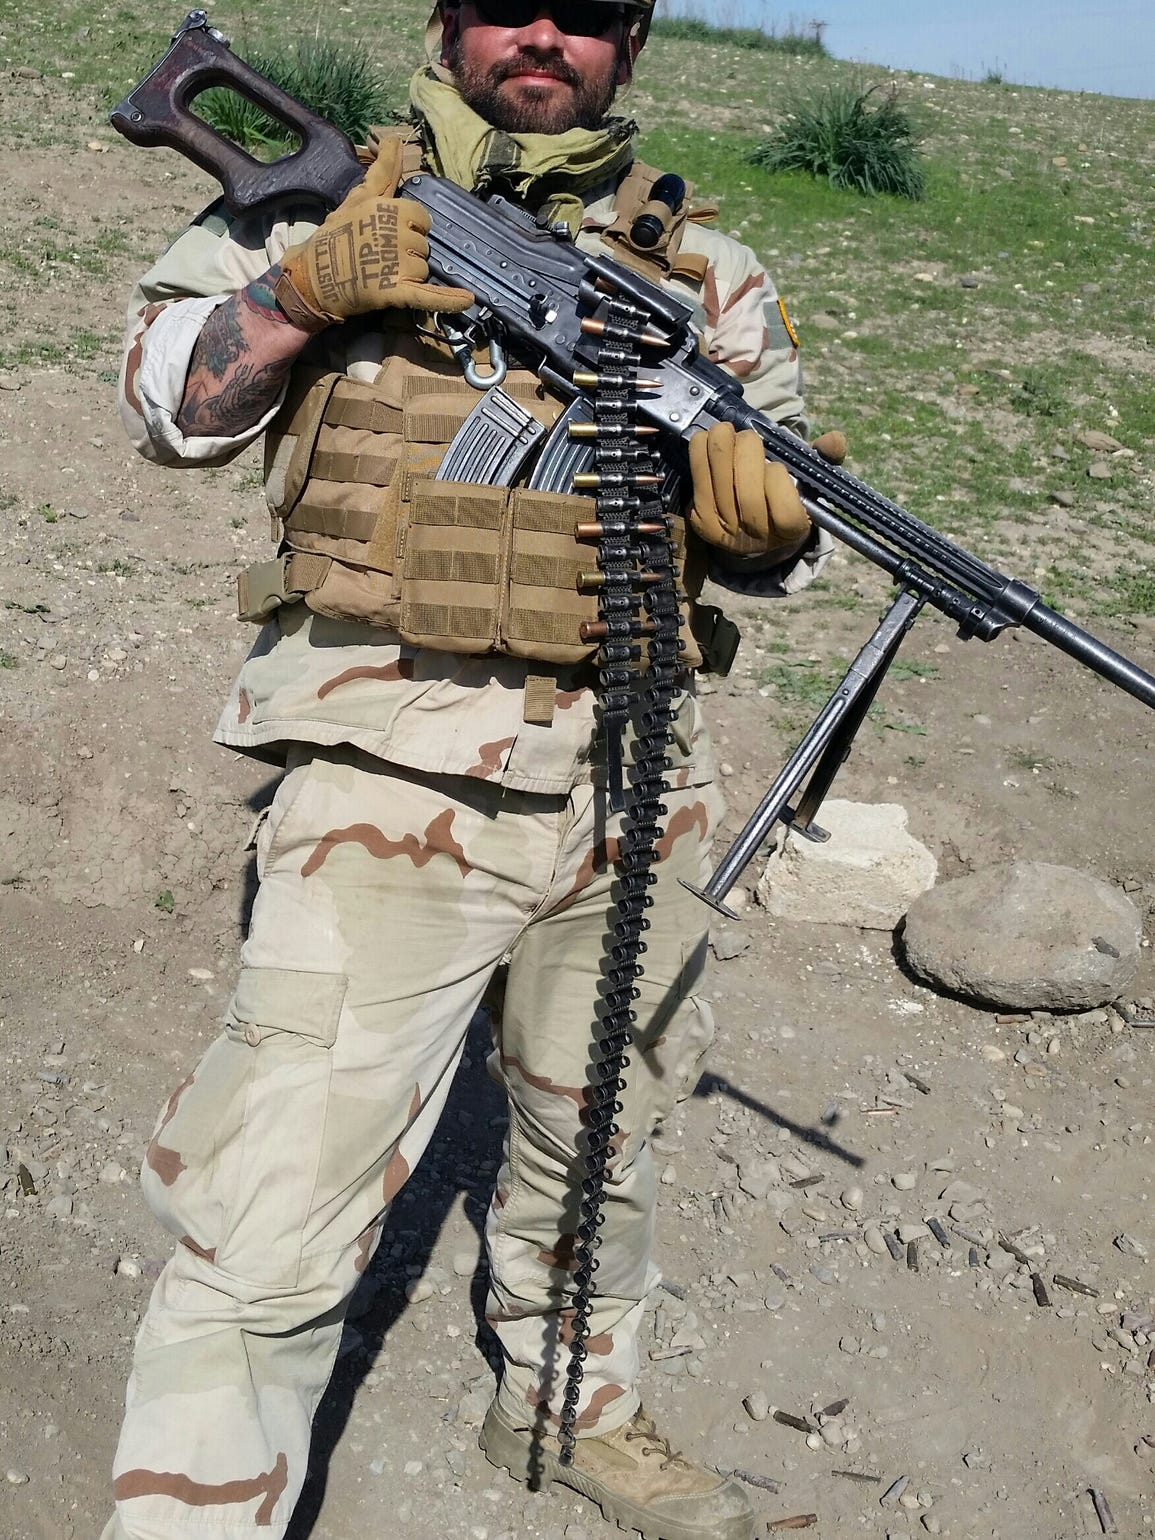 Anthony DelGatto, of Sea Bright, poses with his PKM